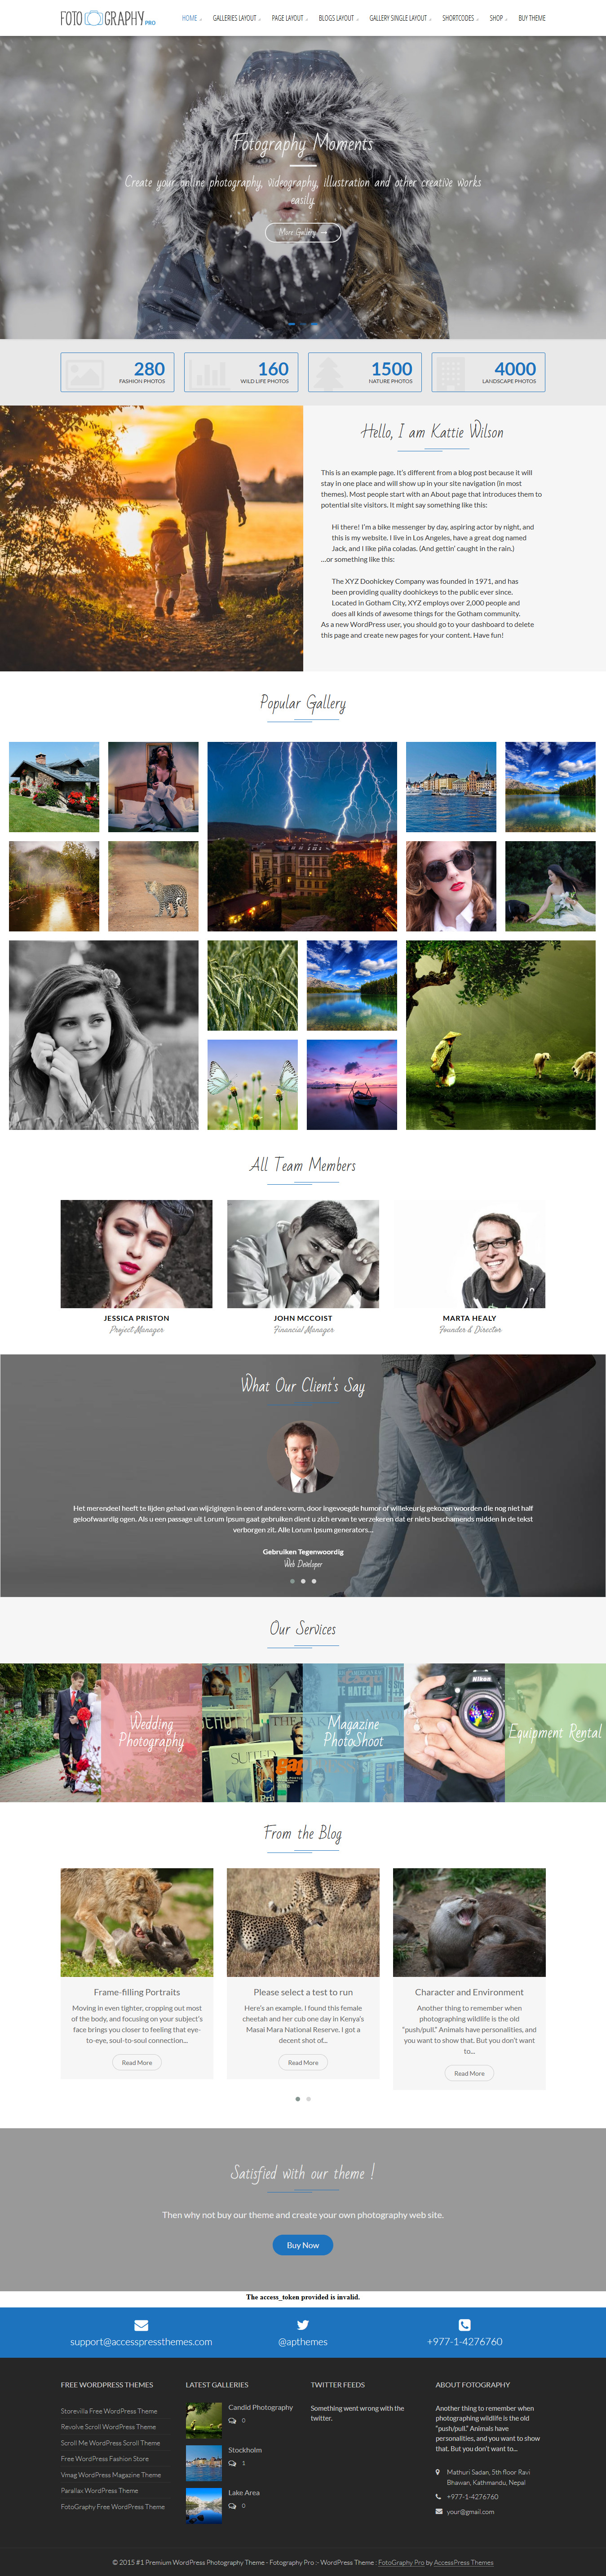 Fotography Pro - Premium Photography WordPress Themes and Templates